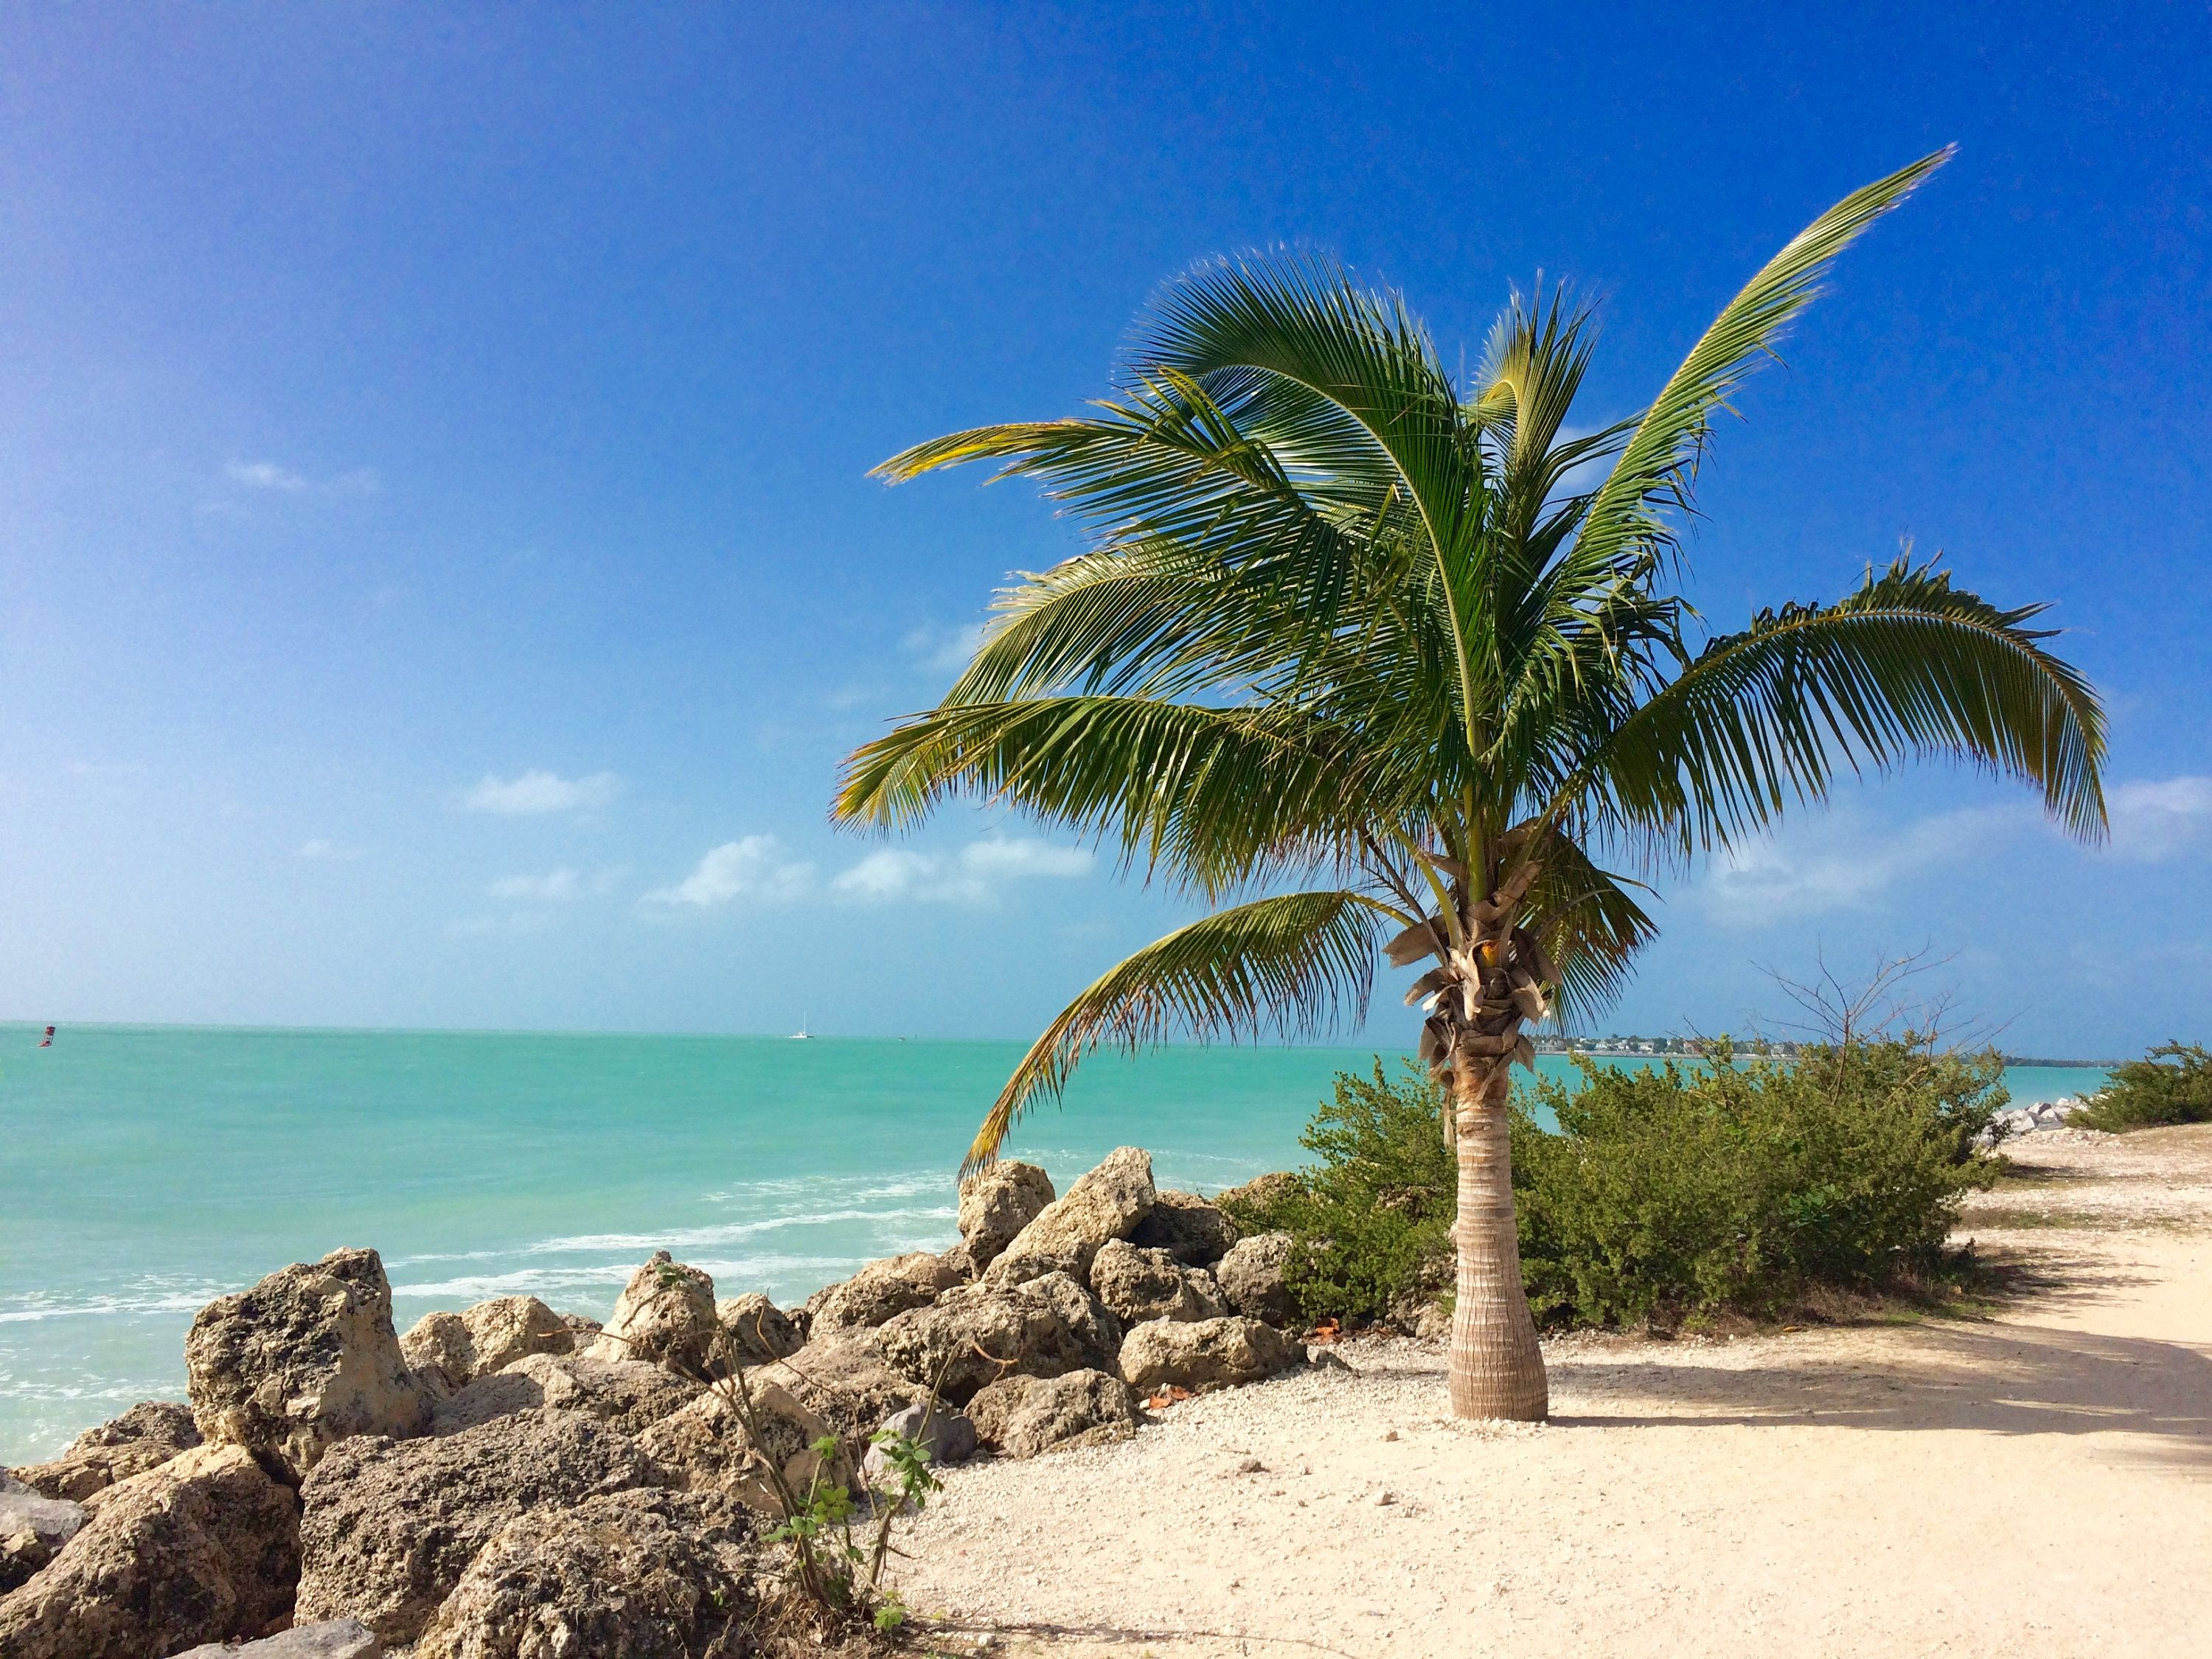 Key West Fort Zachary Taylor State Park Ft Zachary Taylor Etsy In 2021 State Parks Beach Photography Key West